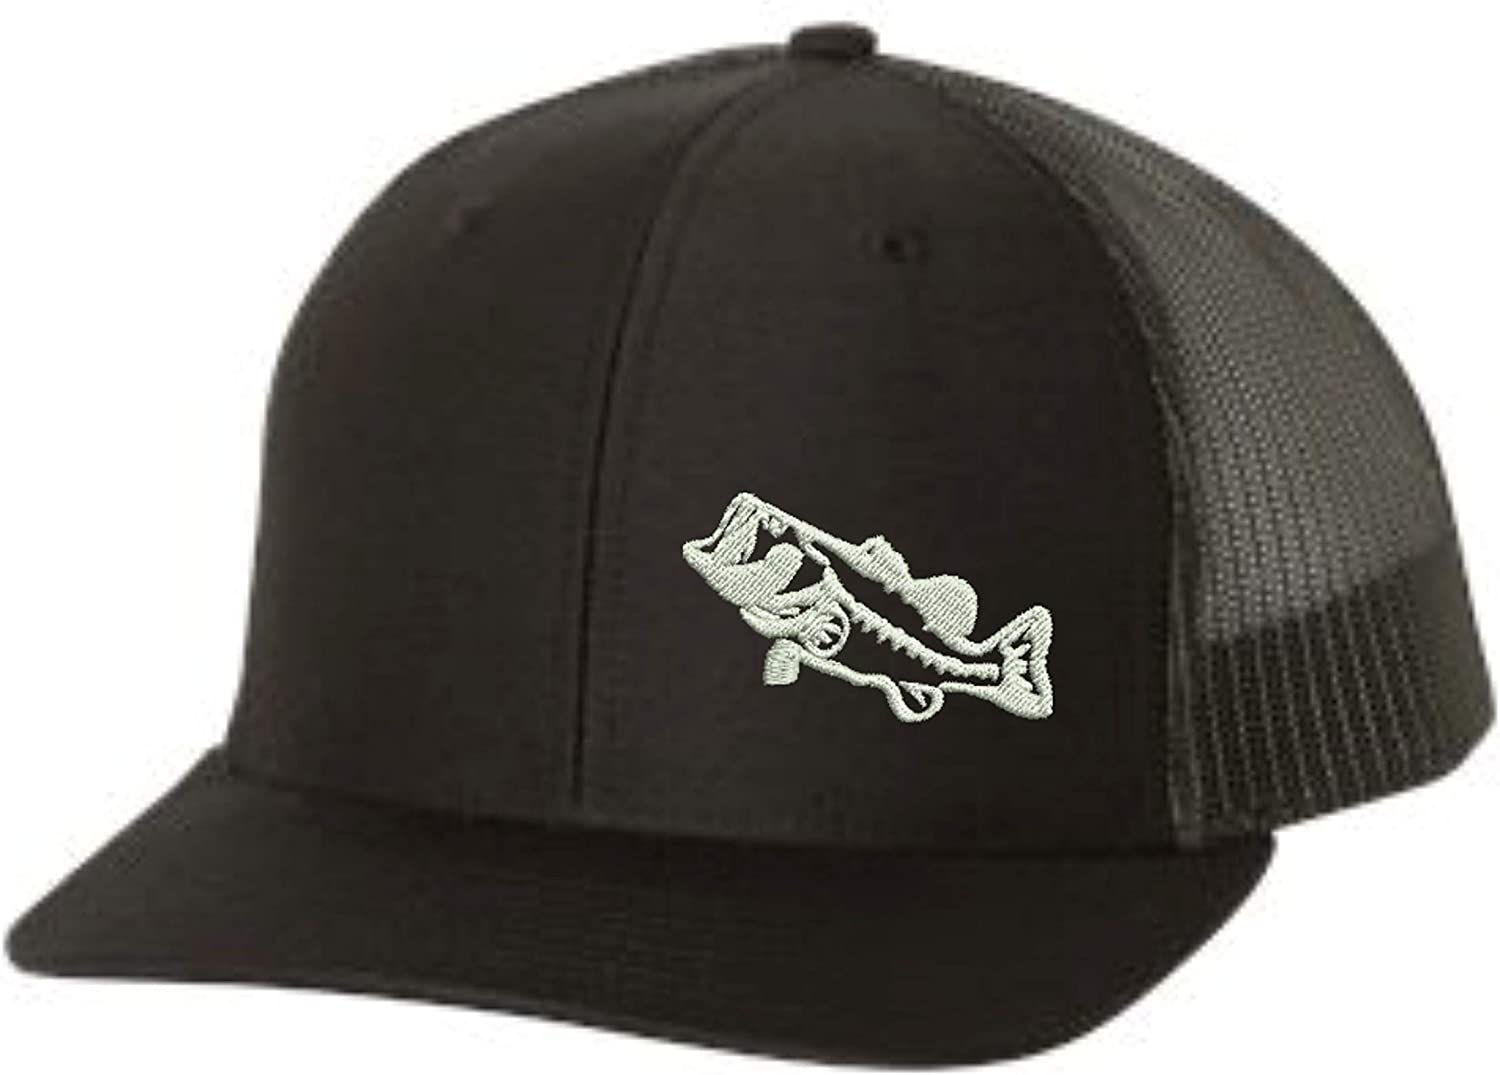 Trucker Hat 40% OFF Cheap Sale – Bass Fishing –Adjustable Wo Cheap super special price Snapback Men